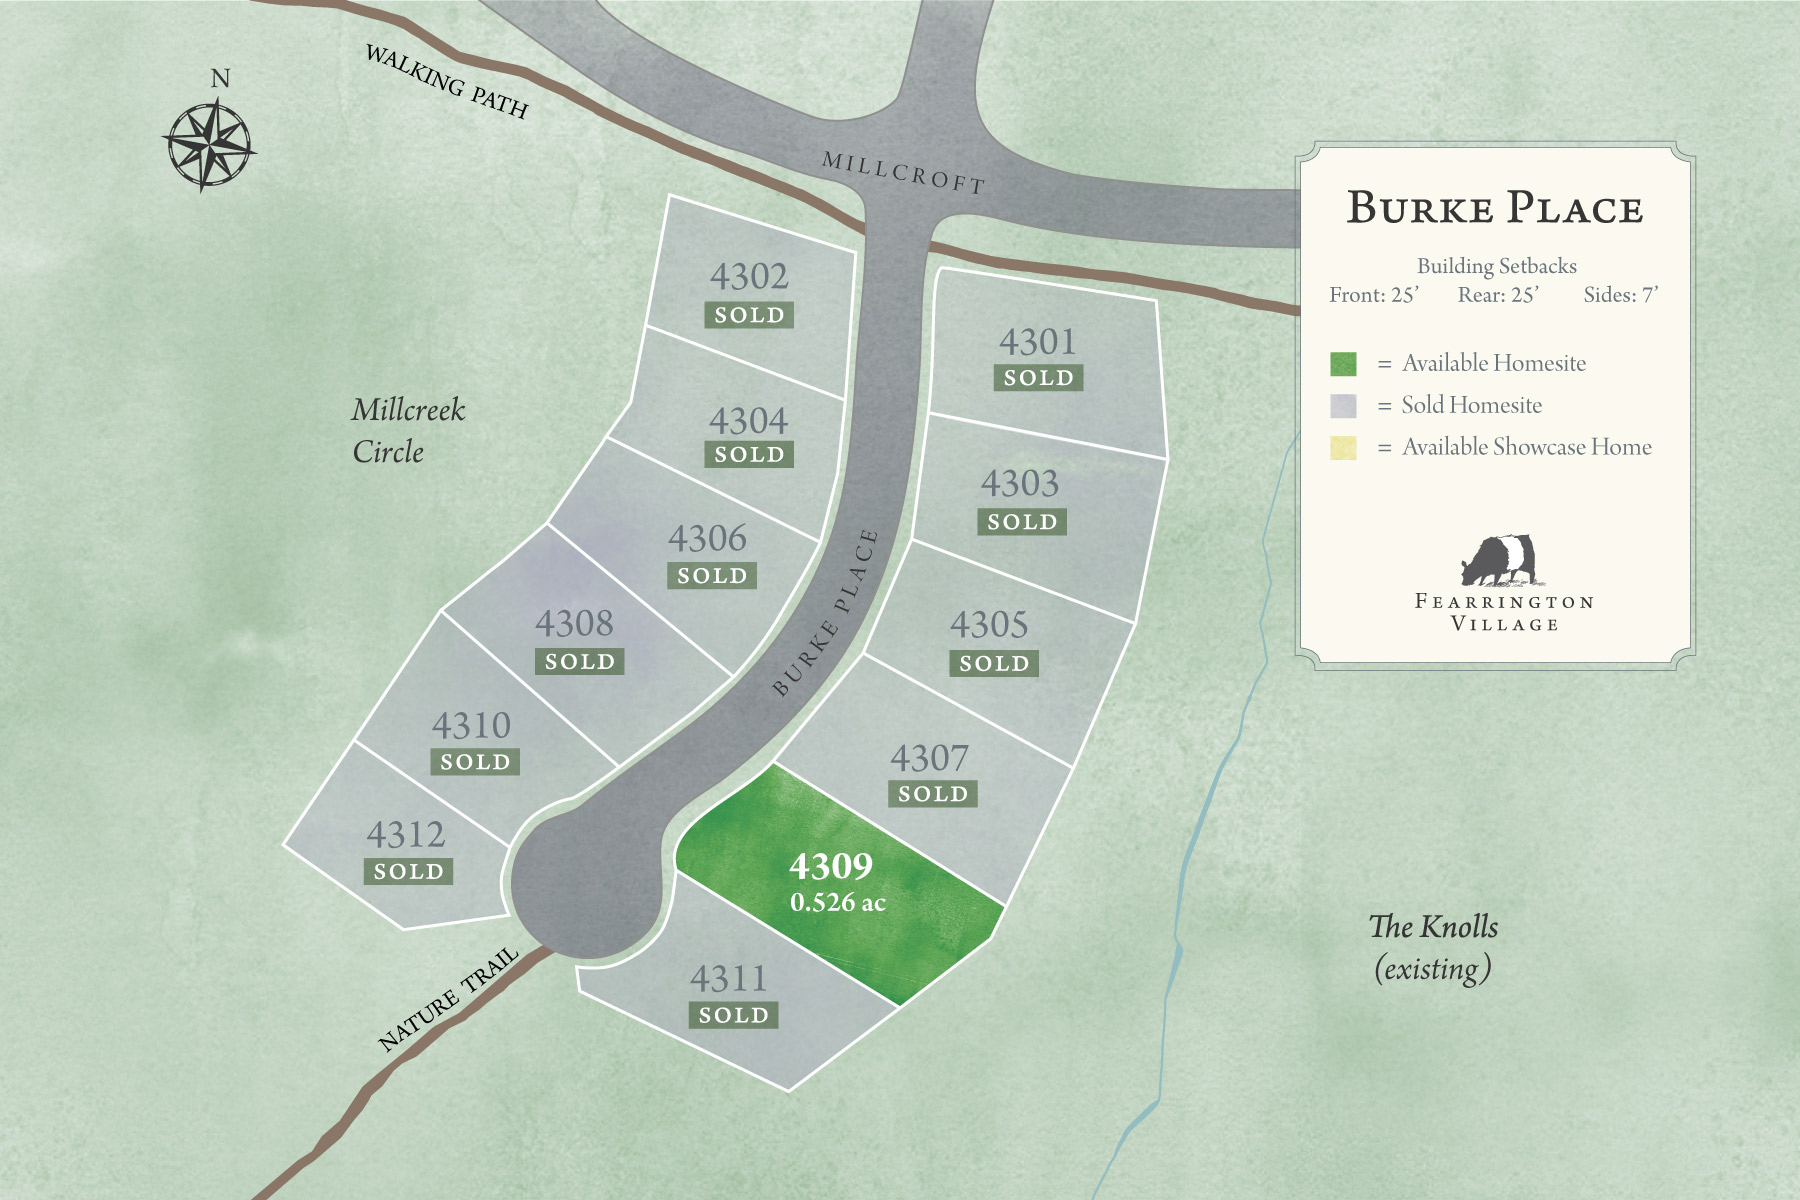 Map of Burke Place